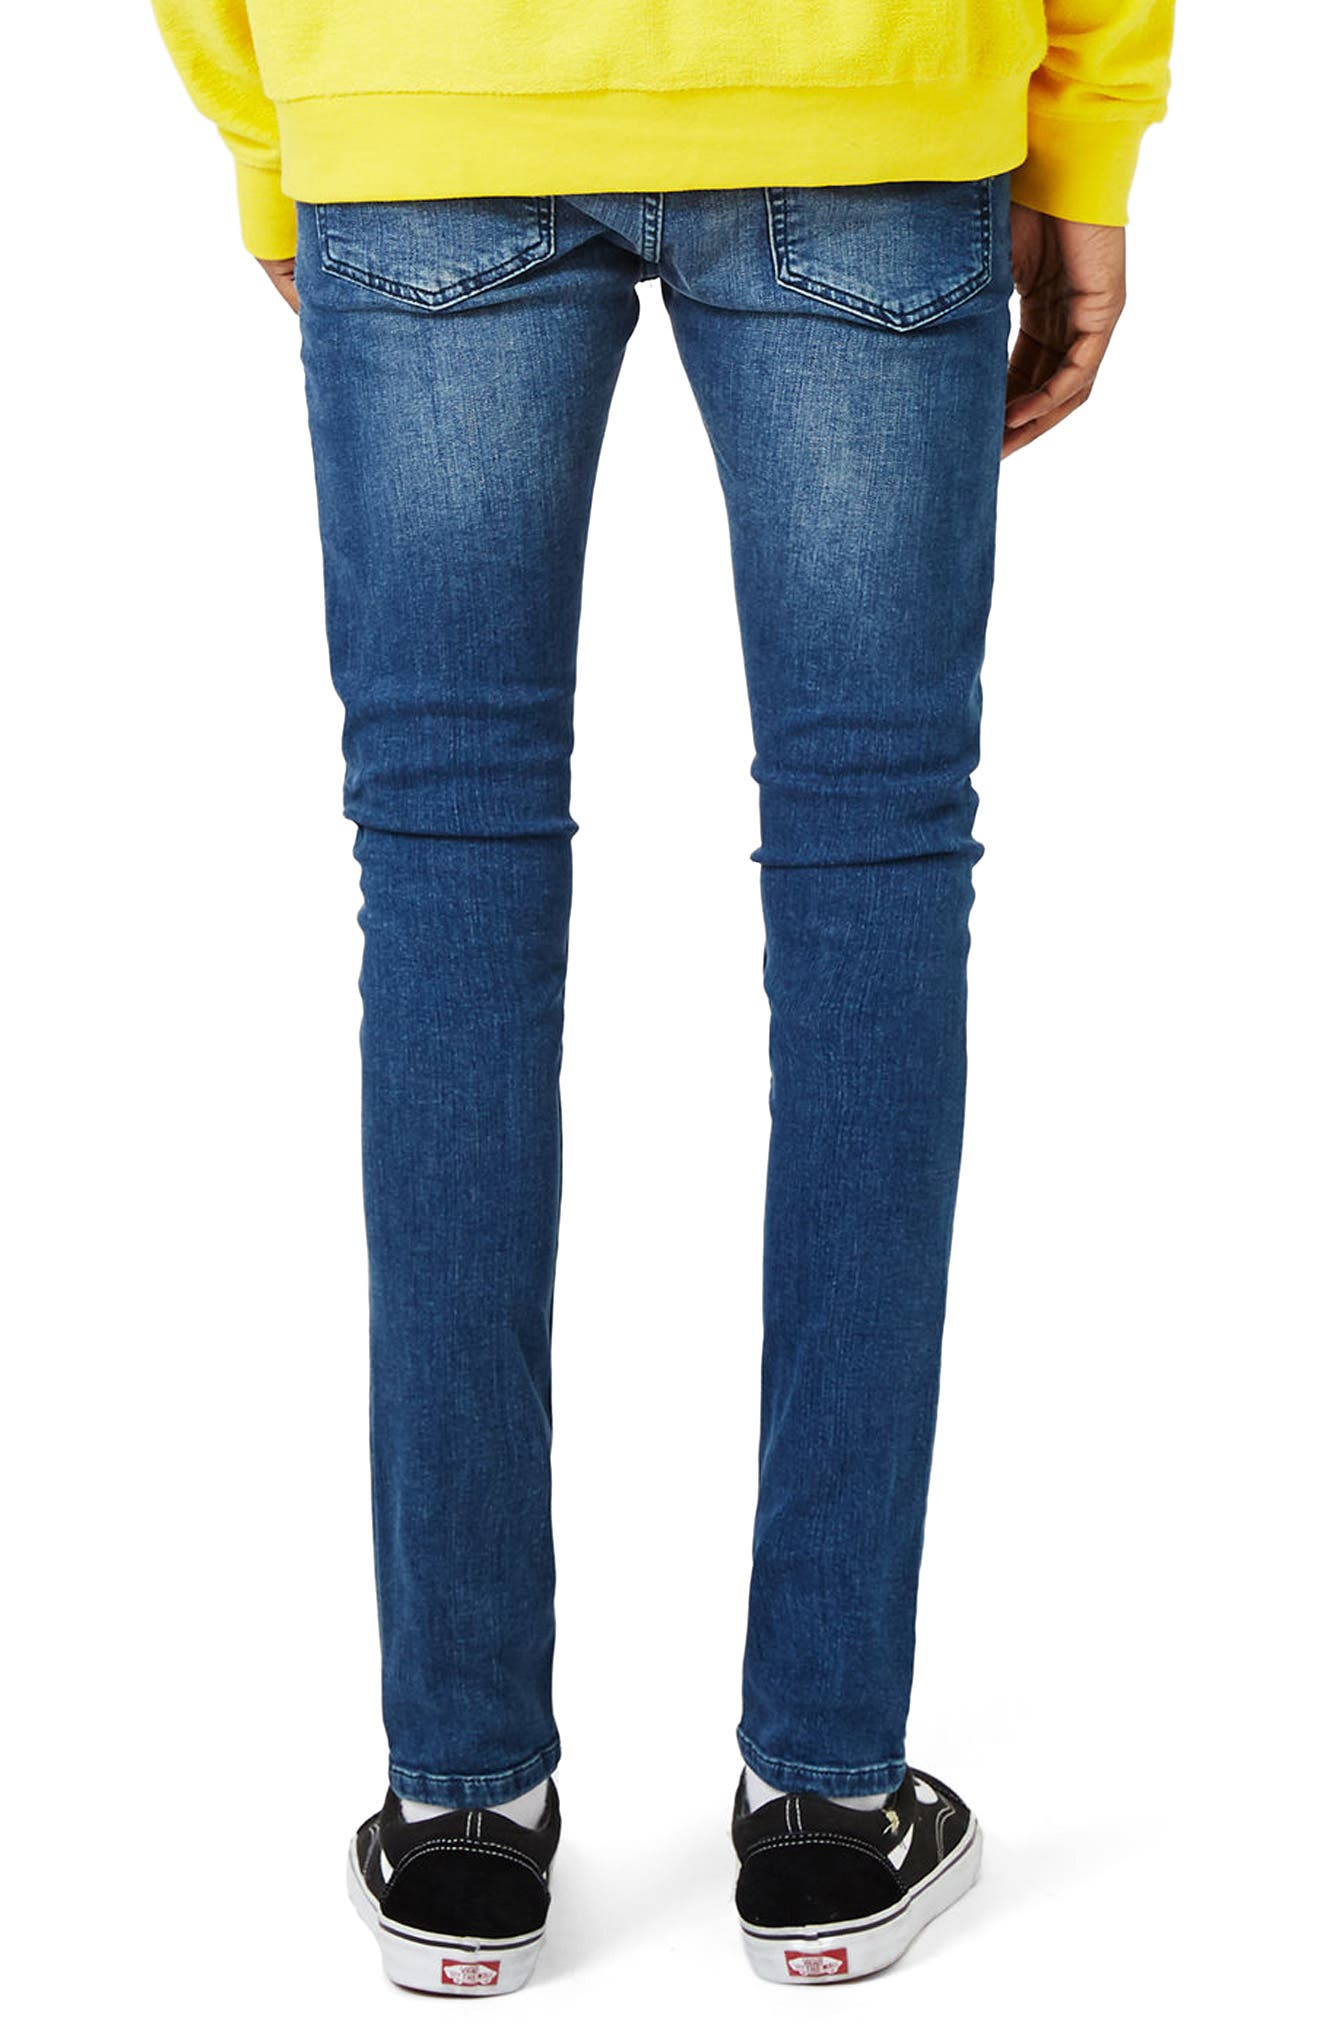 Super Spray On Skinny Fit Jeans,                             Alternate thumbnail 2, color,                             400